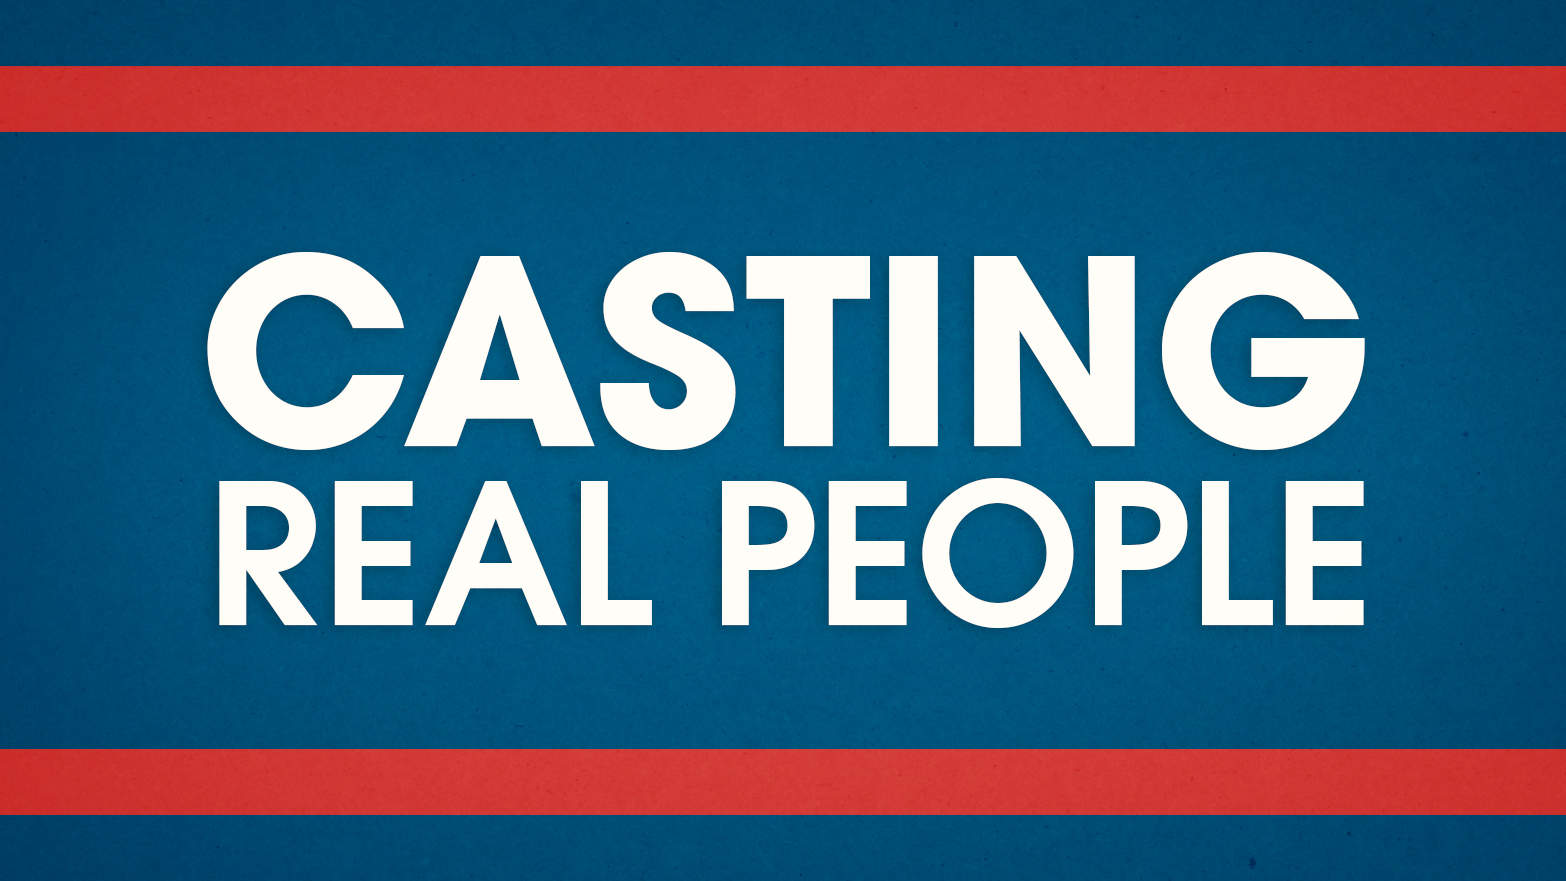 Casting Real People